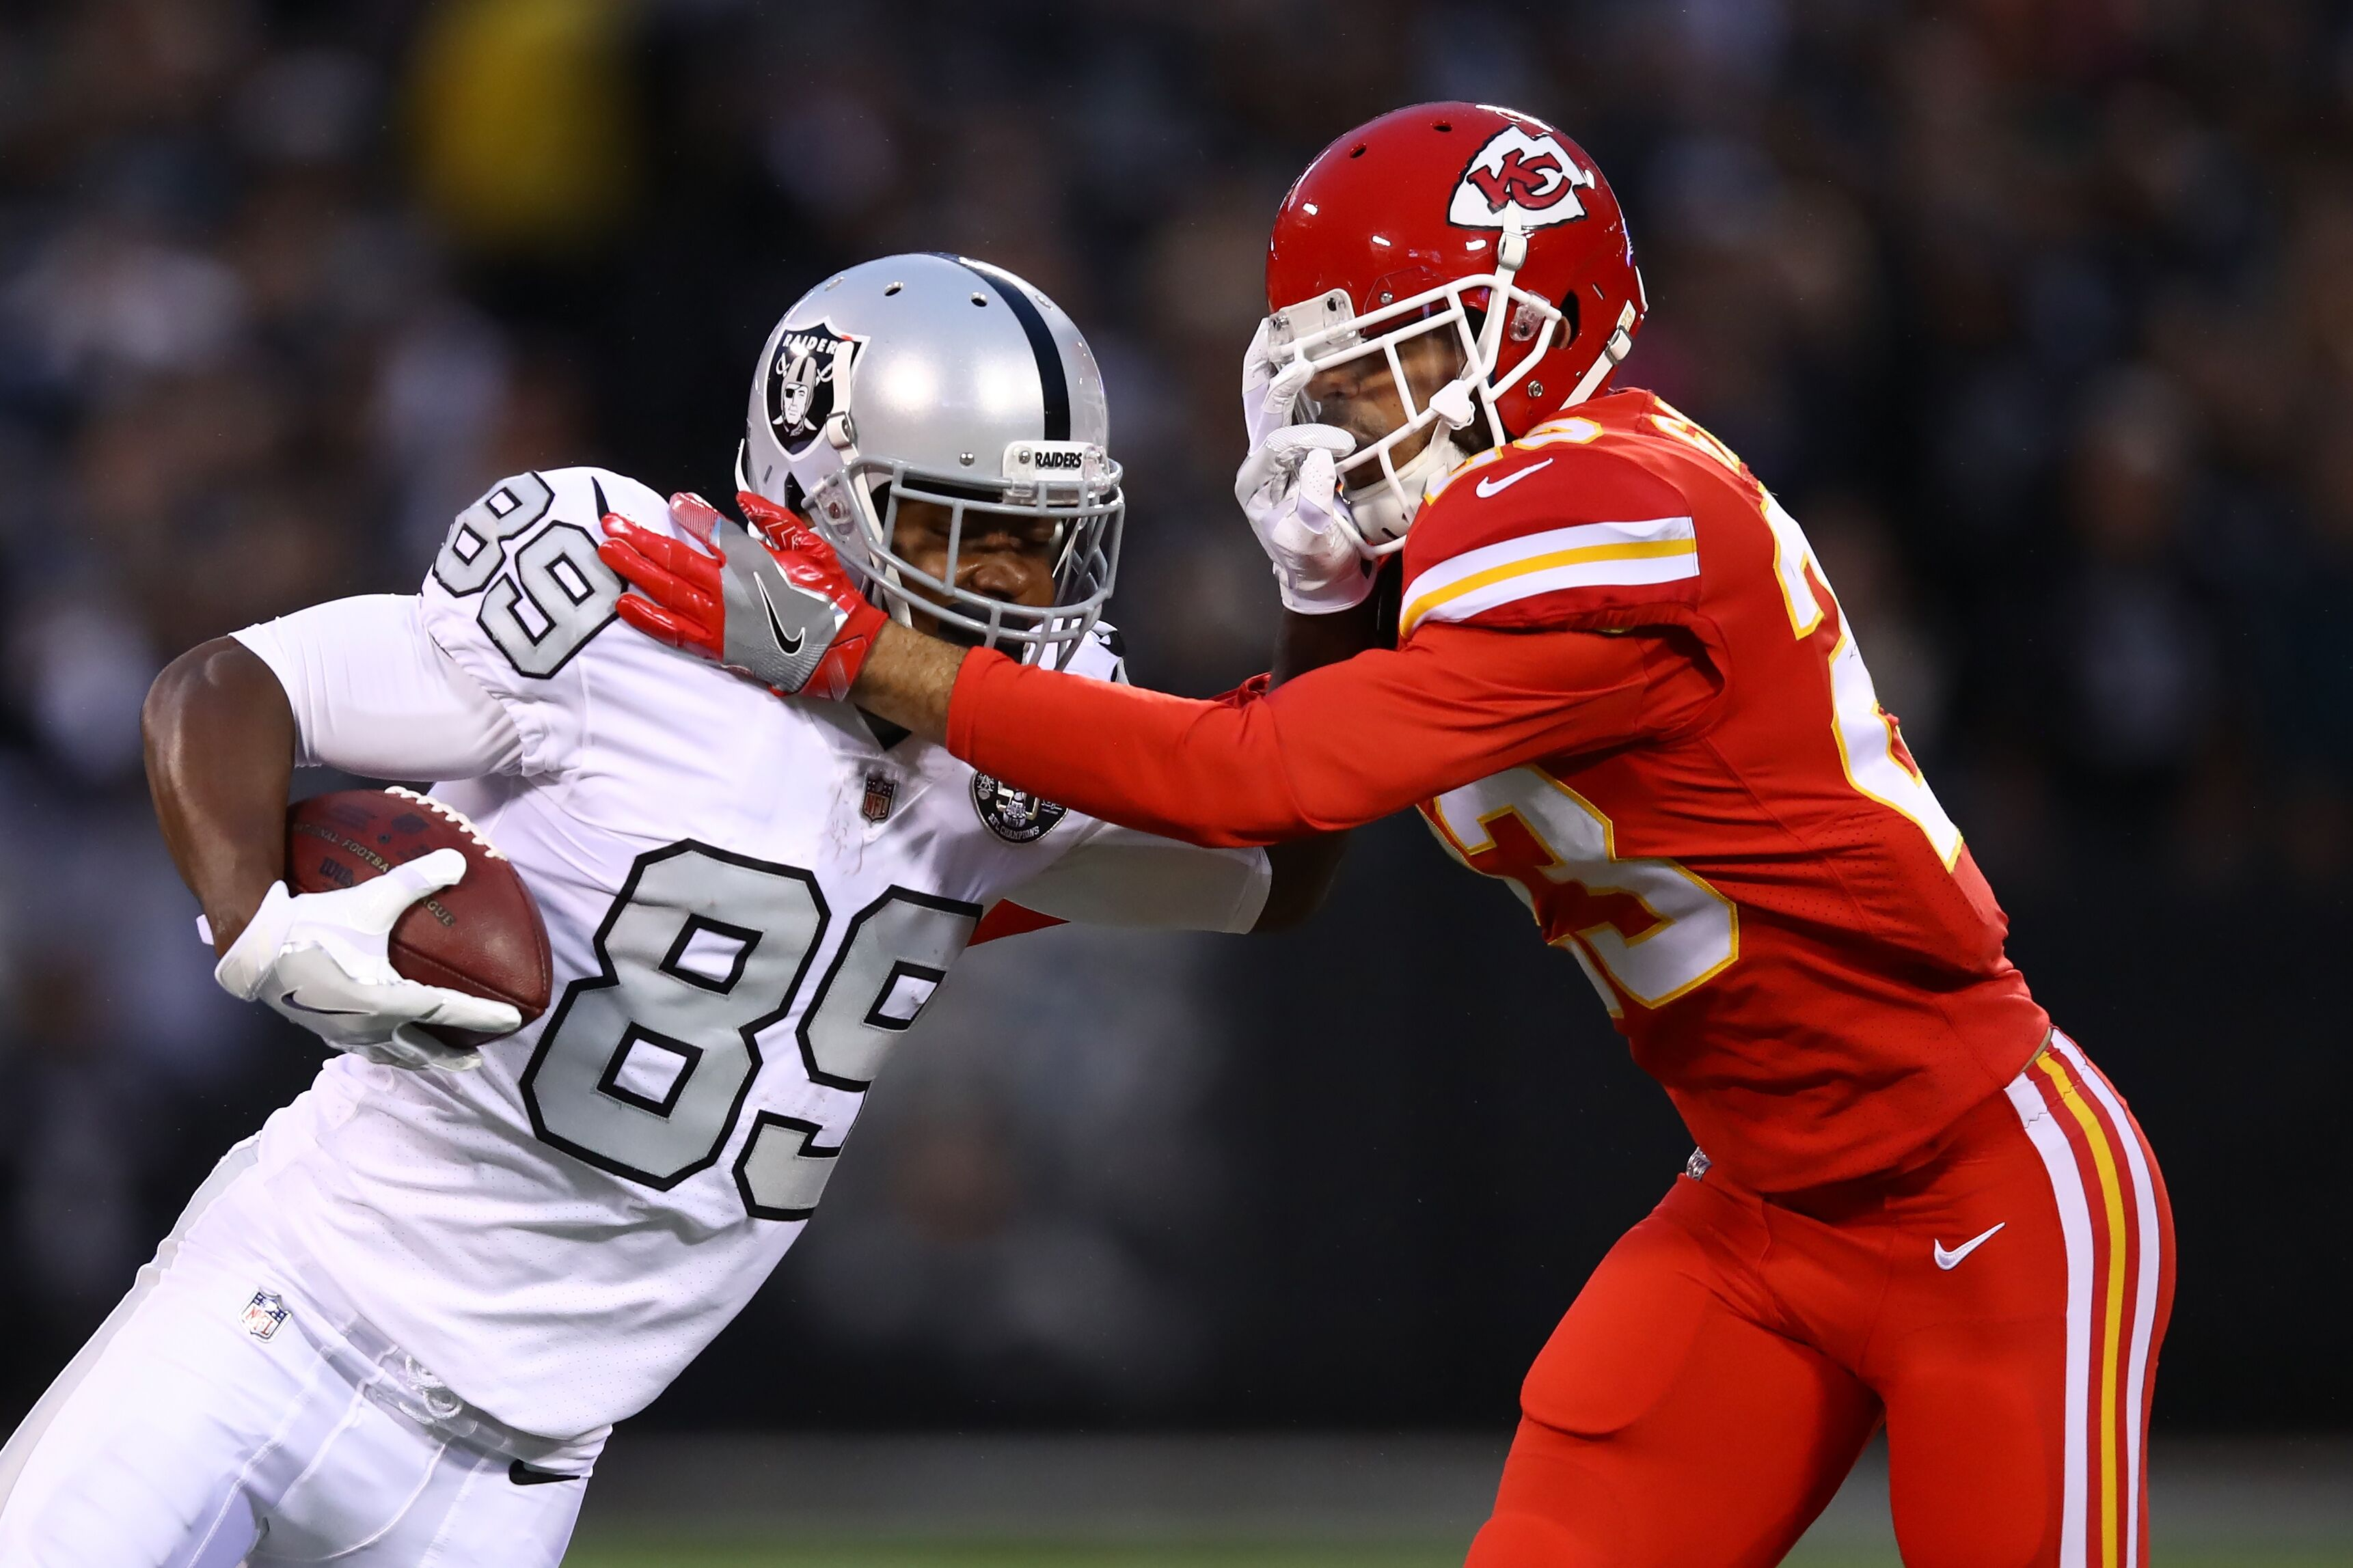 863241074-kansas-city-chiefs-vs-oakland-raiders.jpg